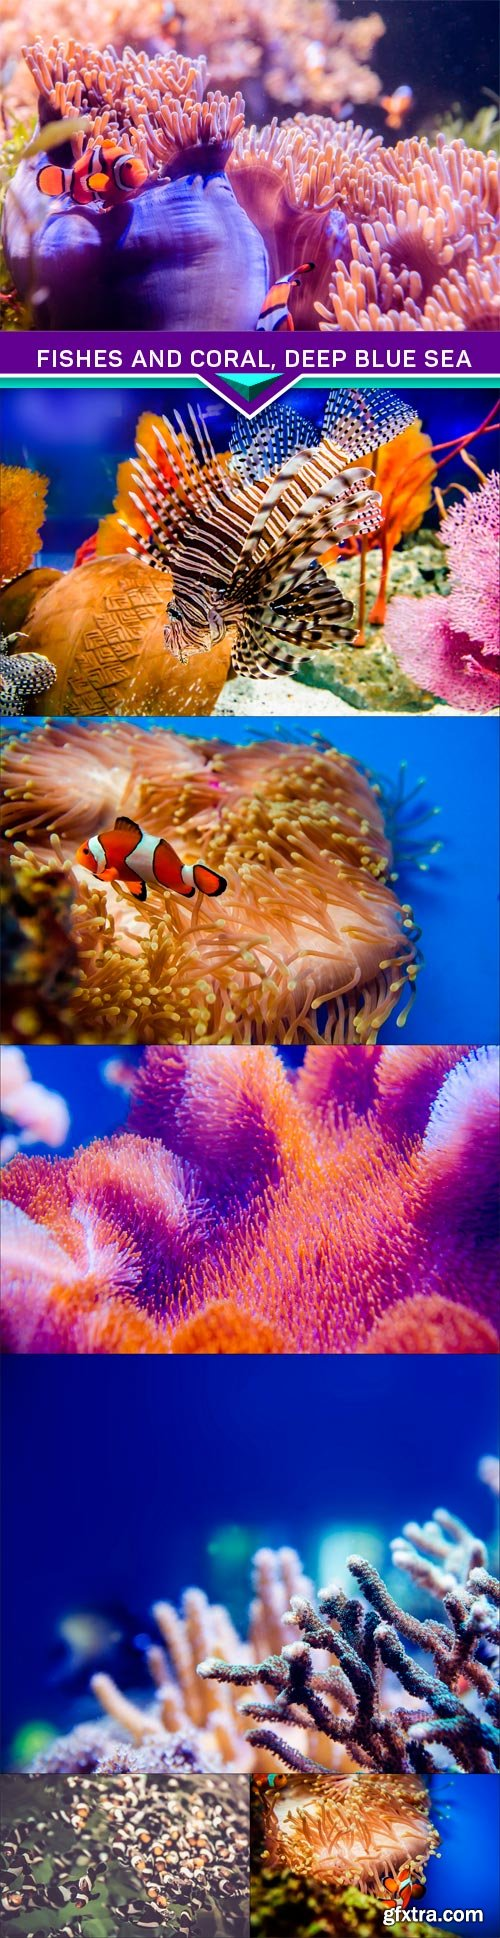 Fishes and coral, deep blue sea 7X JPEG